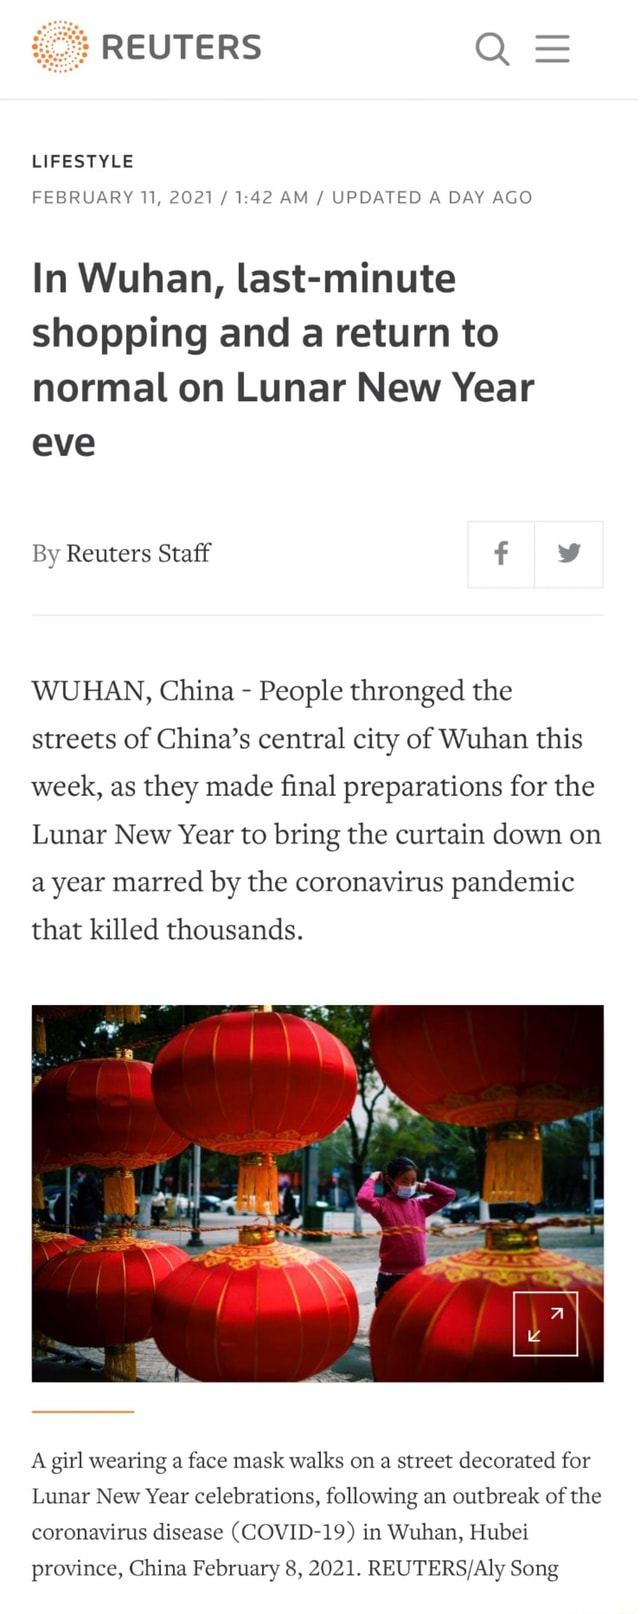 REUTERS LIFESTYLE FEBRUARY 11, 2021  AM  UPDATED A DAY AGO In Wuhan, last minute shopping and a return to normal on Lunar New Year eve By Reuters Staff f WUHAN, China  People thronged the streets of China's central city of Wuhan this week, as they made final preparations for the Lunar New Year to bring the curtain down on a year marred by the coronavirus pandemic that killed thousands. A girl wearing a face mask walks on a street decorated for Lunar New Year celebrations, following an outbreak of the coronavirus disease COVID 19 in Wuhan, Hubei province, China February 8, 2021. Song memes